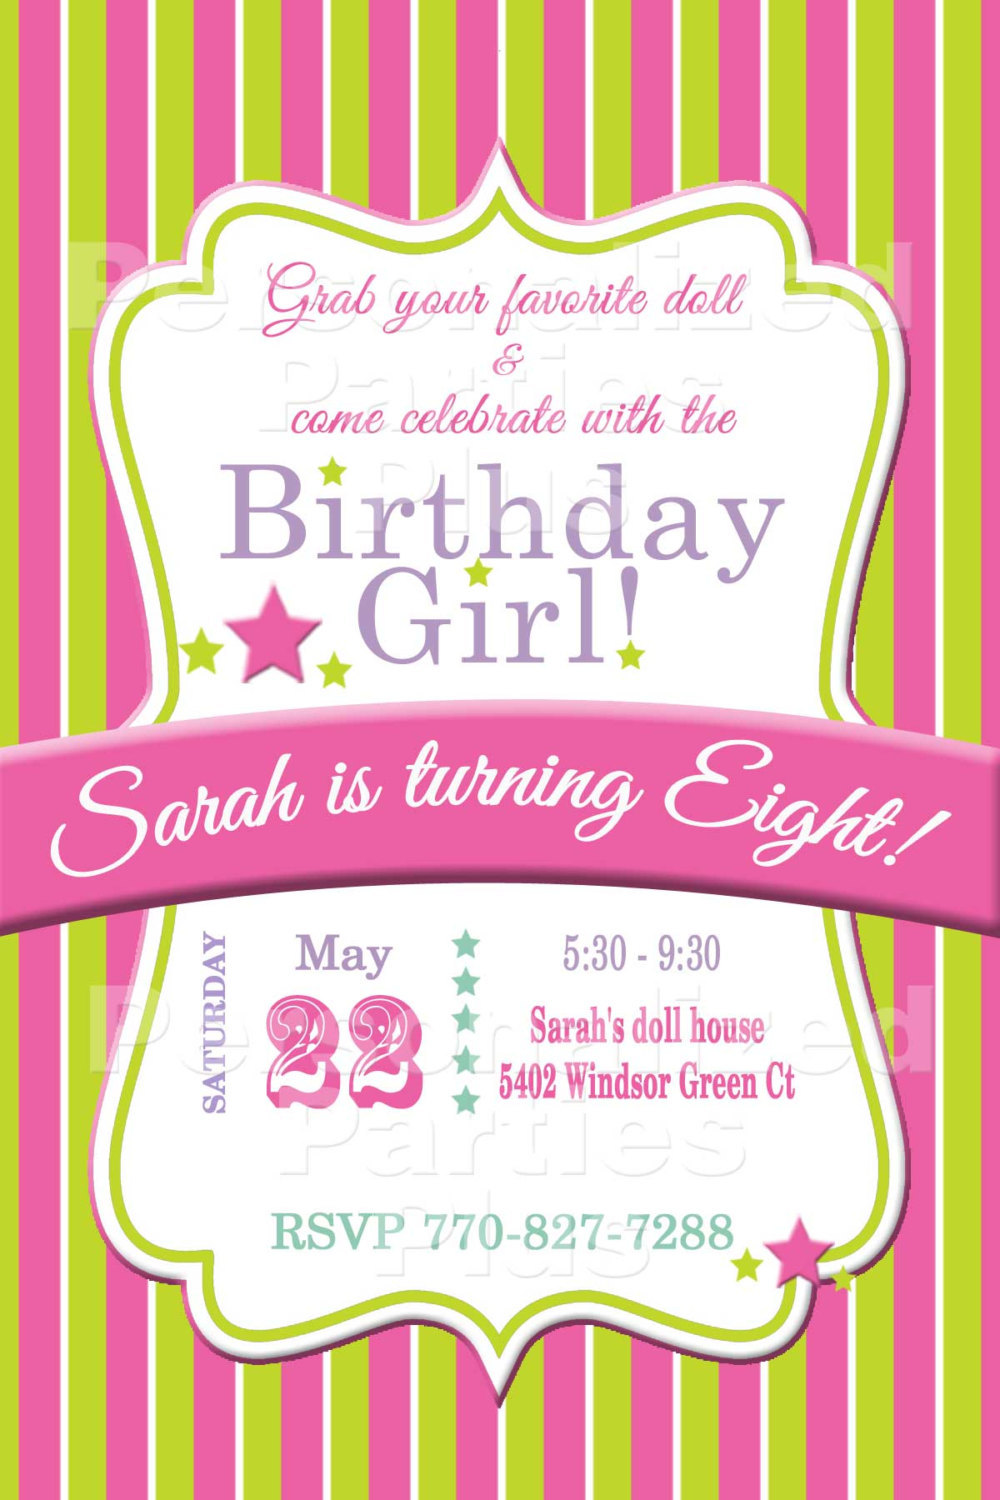 SALE: American Girl Doll themed birthay party pack with invitation, cupcake topp